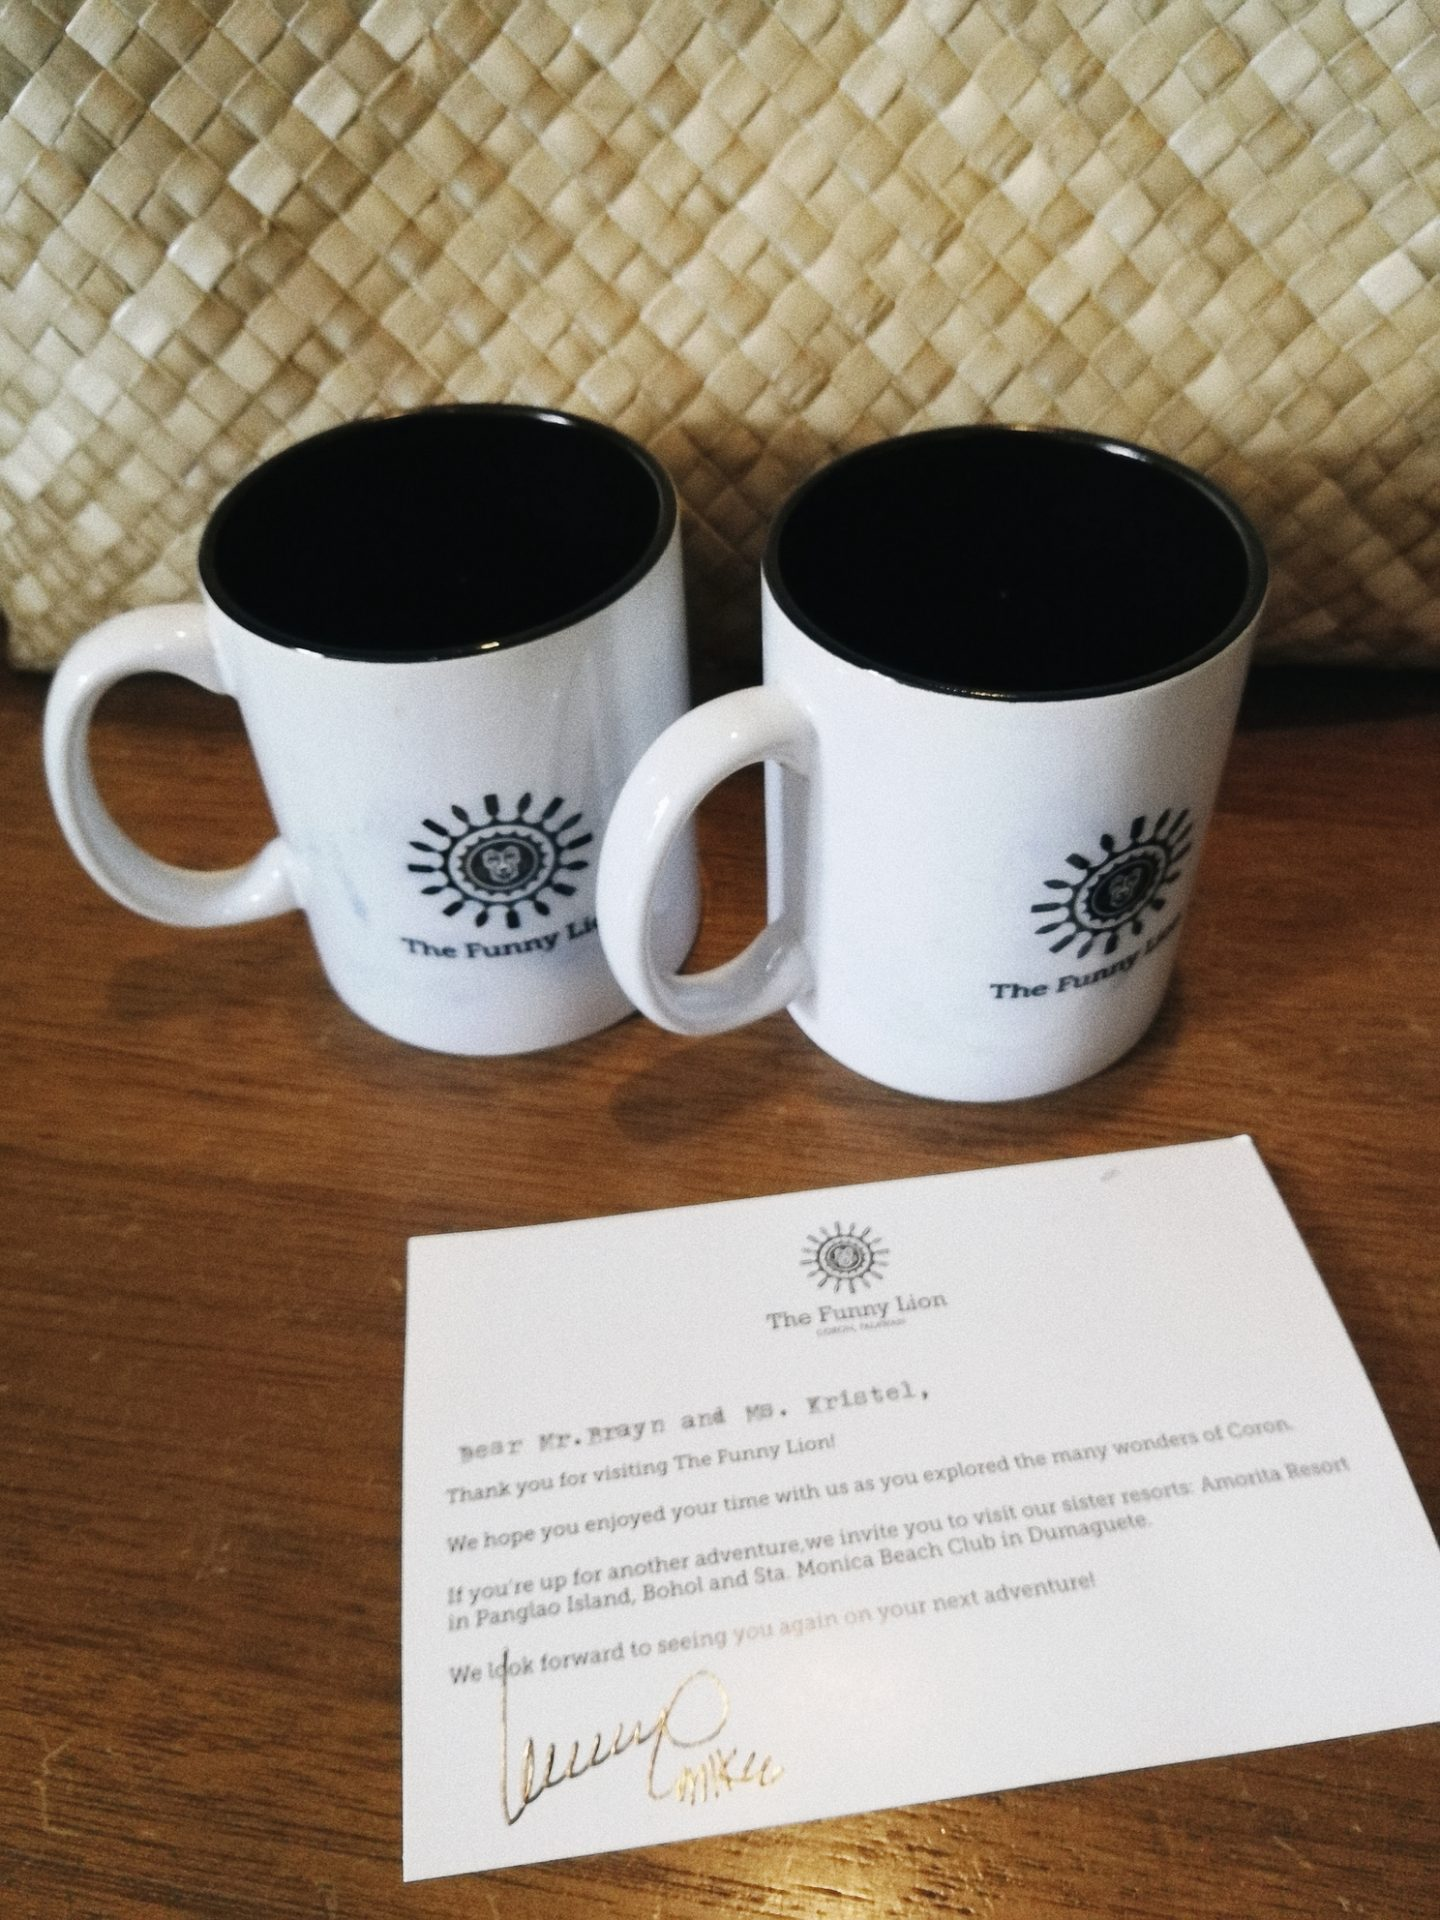 mugs hotel welcome note the funny lion